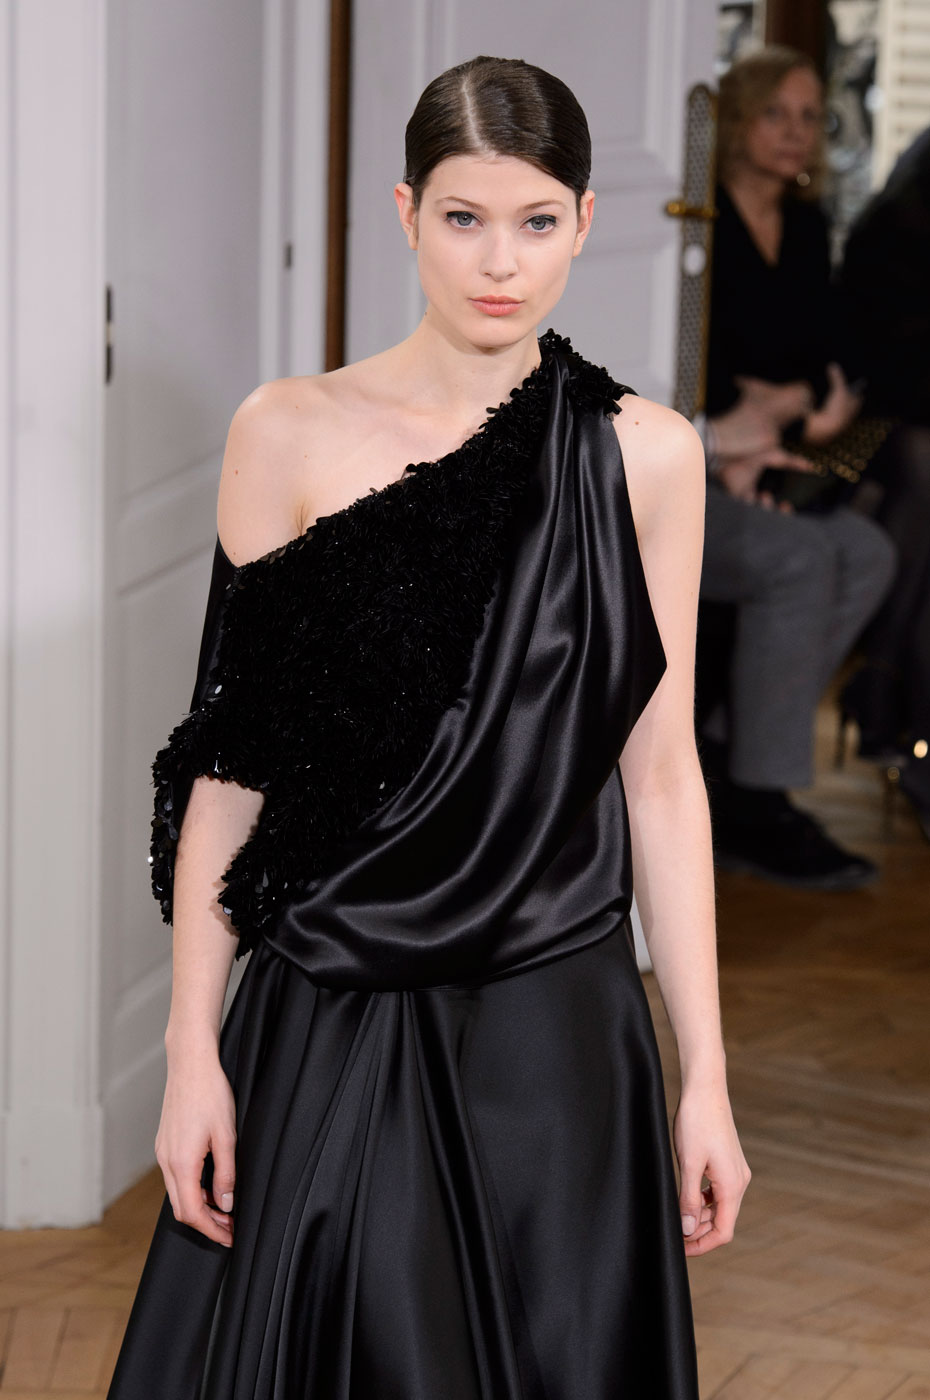 Bouchra-Jarrar-fashion-runway-show-haute-couture-paris-spring-summer-2015-the-impression-16